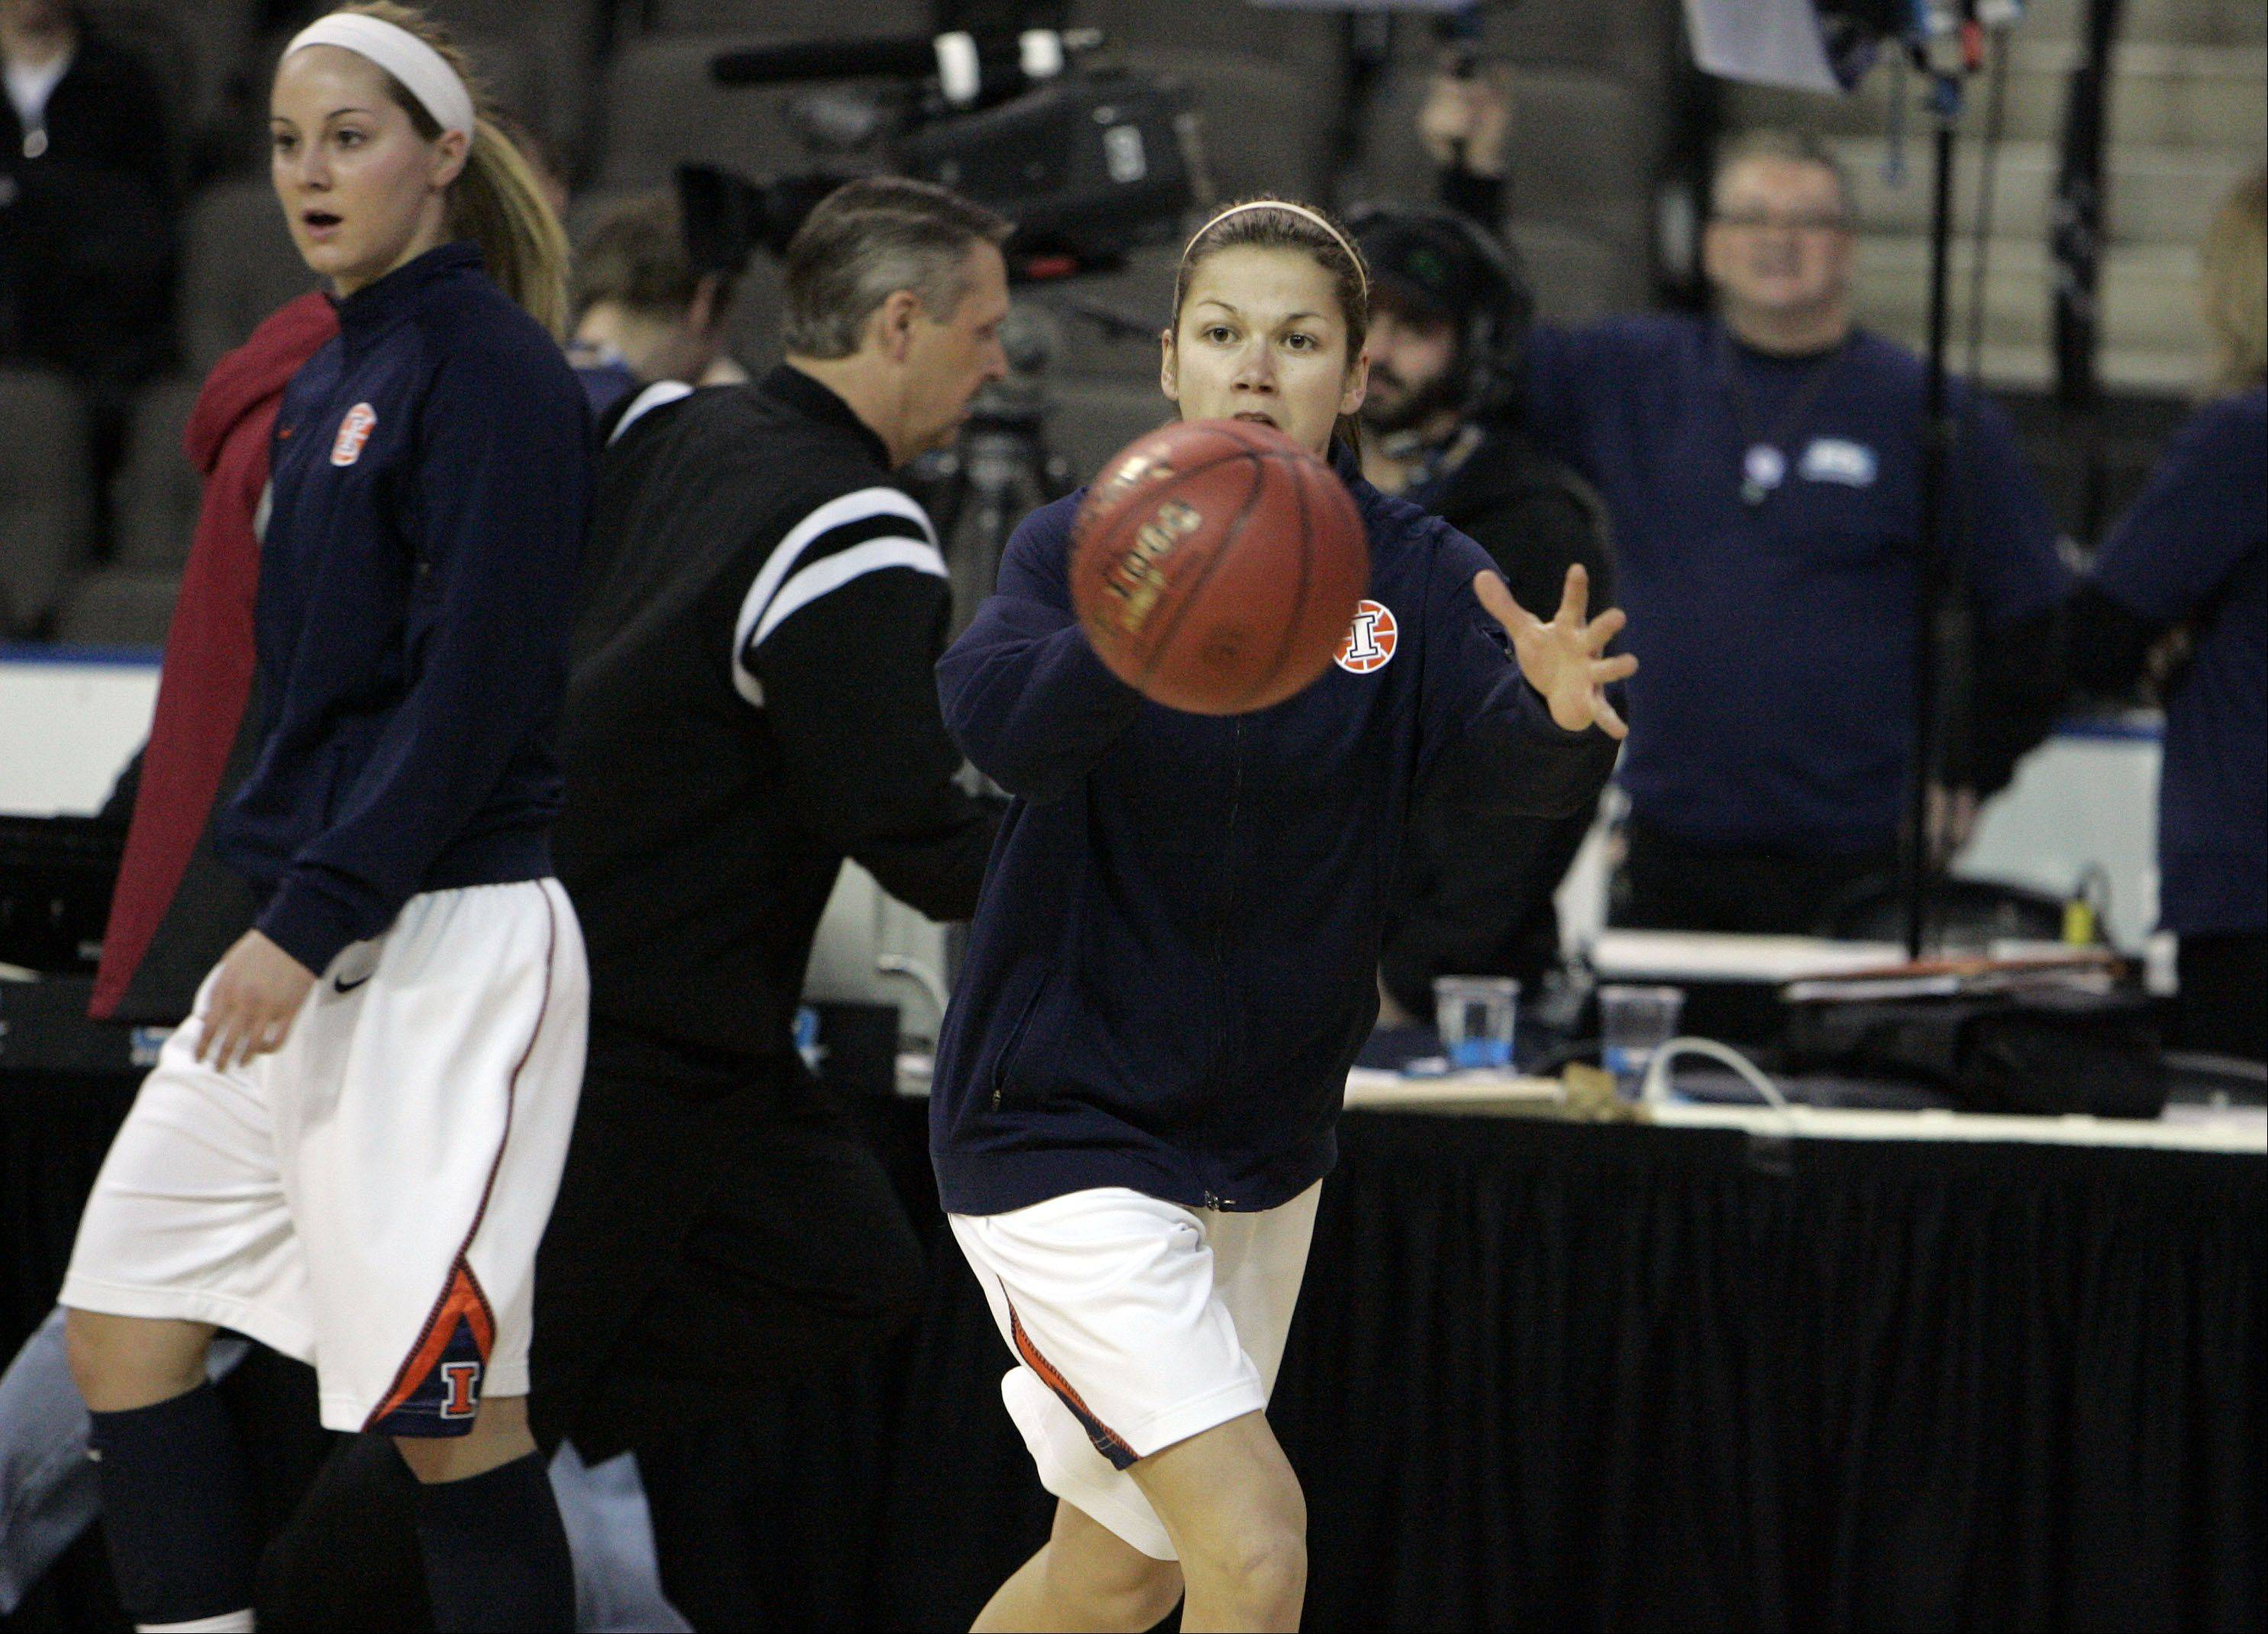 Hampshire and ECC graduate Cassie Dumoulin, who played at Illinois this season, passes the ball in warm-ups prior to the Illini�s loss to Wisconsin Thursday at the Big Ten women�s basketball tournament at the Sears Centre in Hoffman Estates.